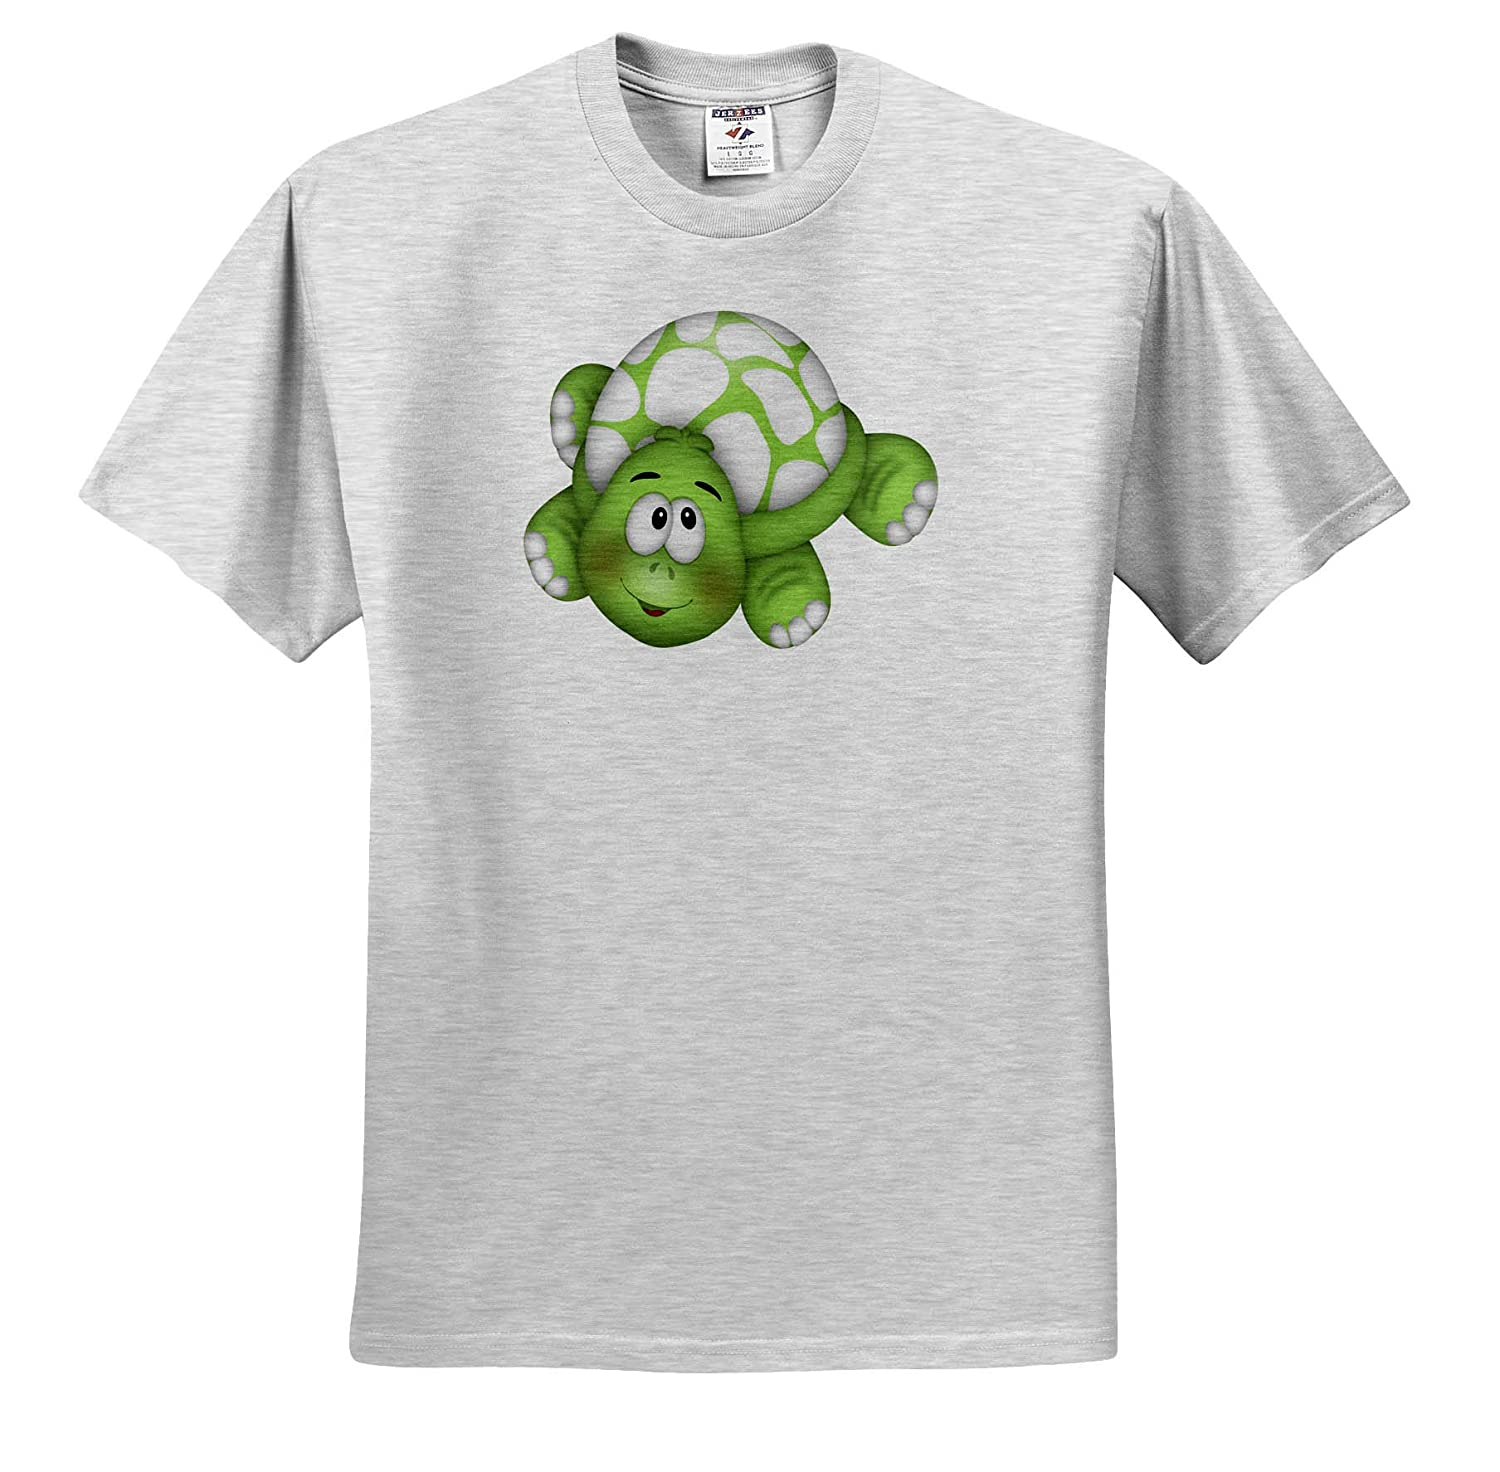 3dRose Anne Marie Baugh ts/_318020 Cute Green and White Happy Turtle Illustration Adult T-Shirt XL Illustrations